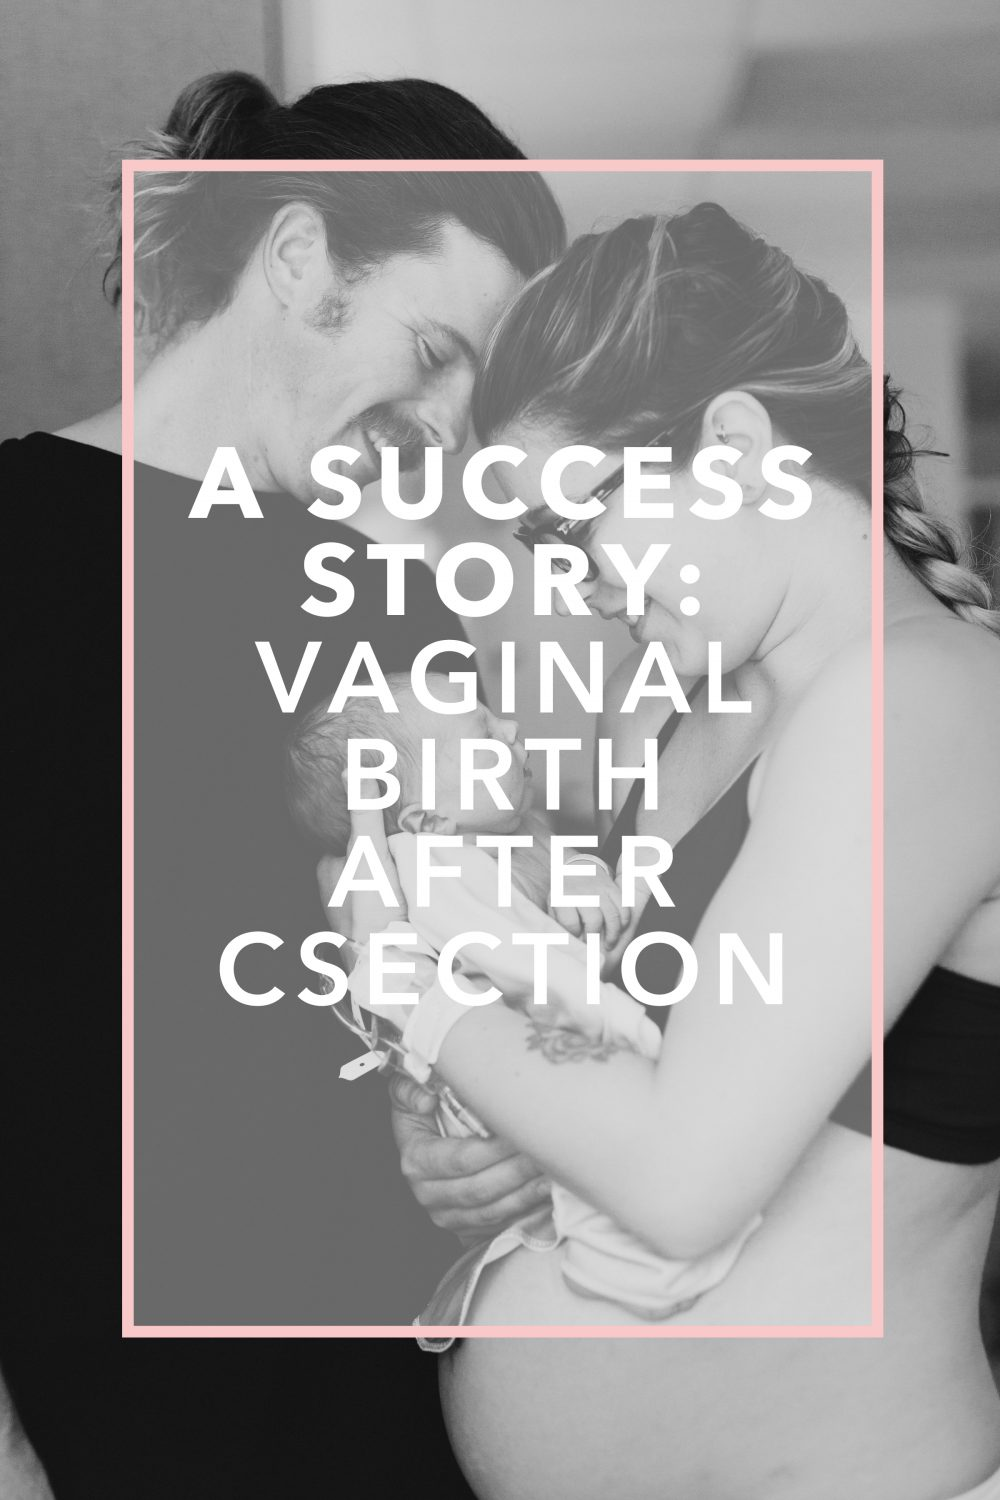 A Successful Vaginal Birth After C Section Birth Story